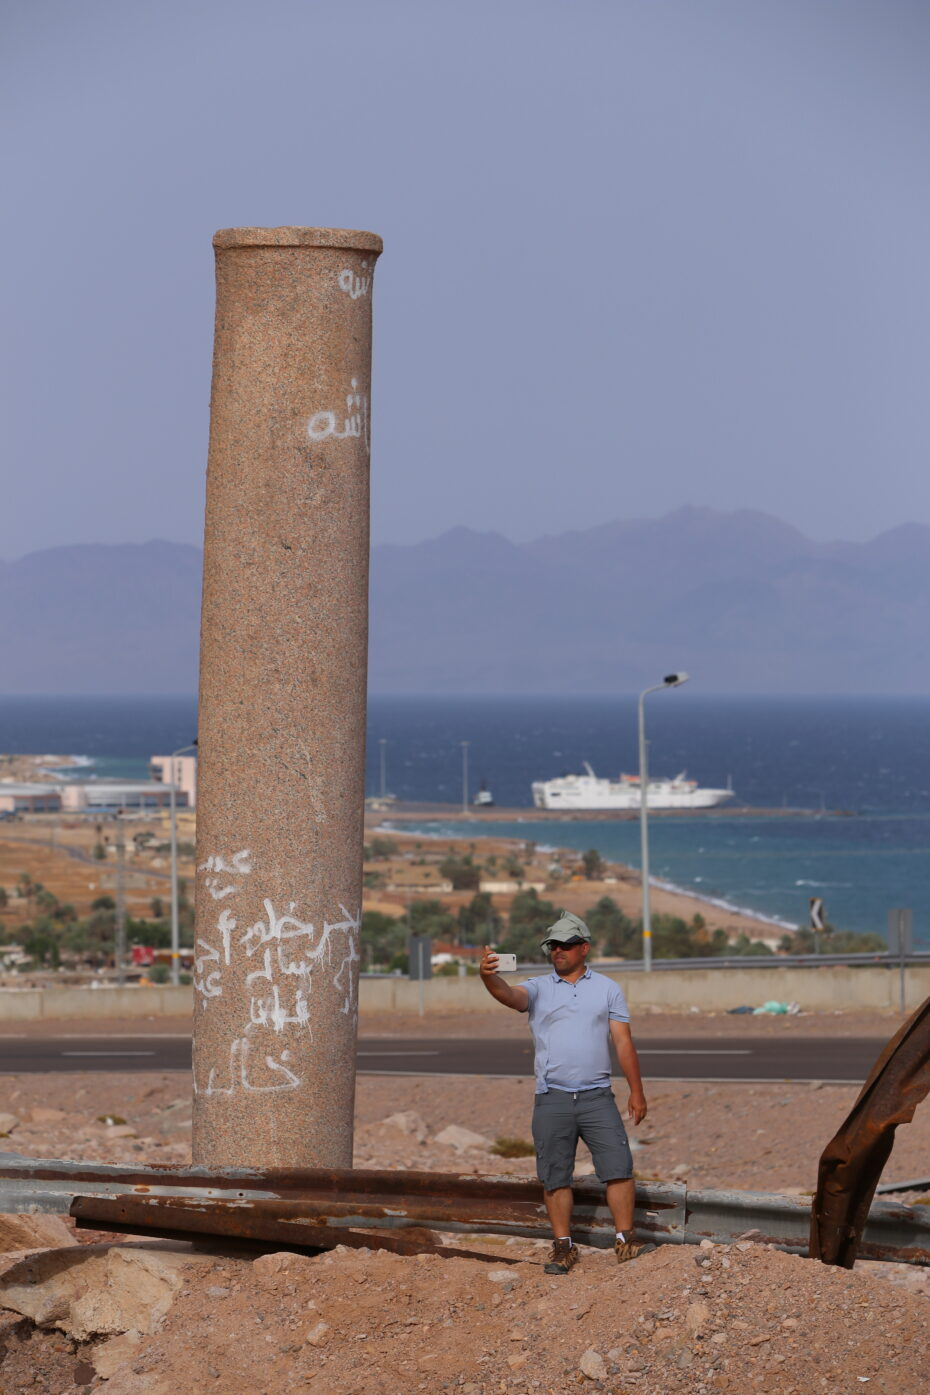 The granite column that Ron Wyatt discovered and claimed that King Solomon erected at the real Red Sea crossing, Nuweiba, Egypt